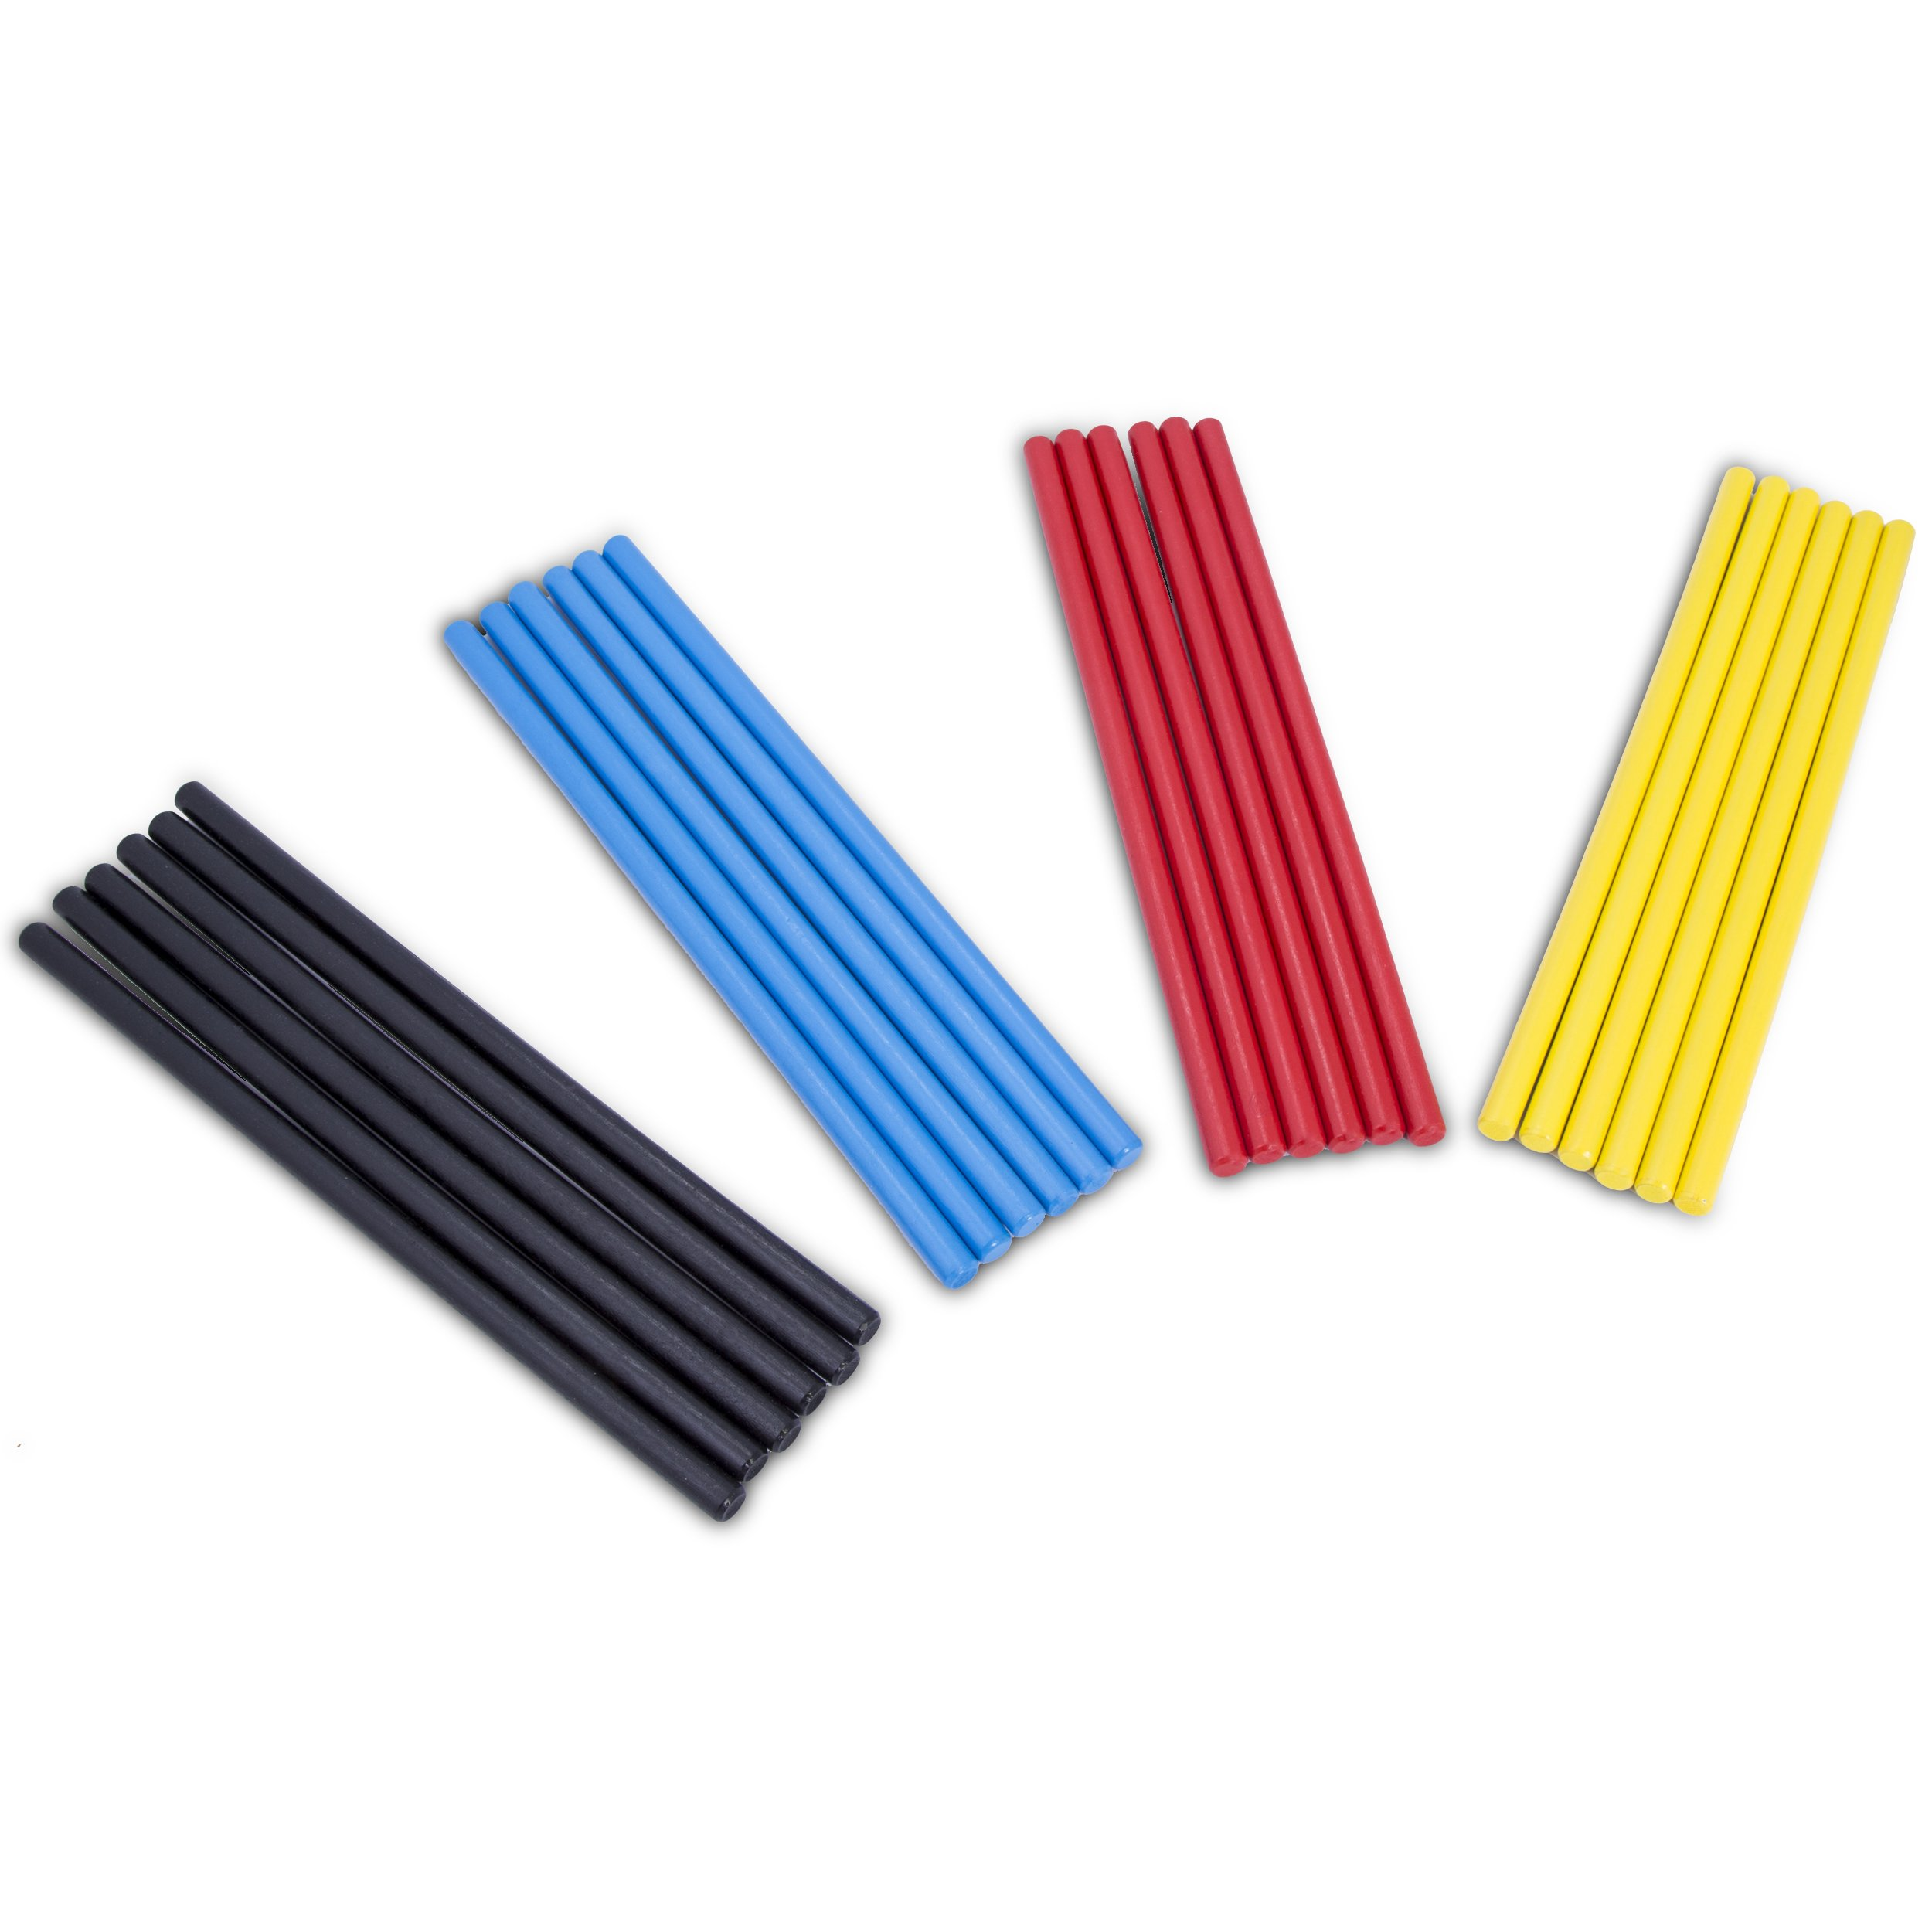 Rhythm Music Lummi Sticks - 24 Pack With Four Different Colors - Enjoyable and Economic Way To Teach Kids and Children Rhythm And Music In The Classroom